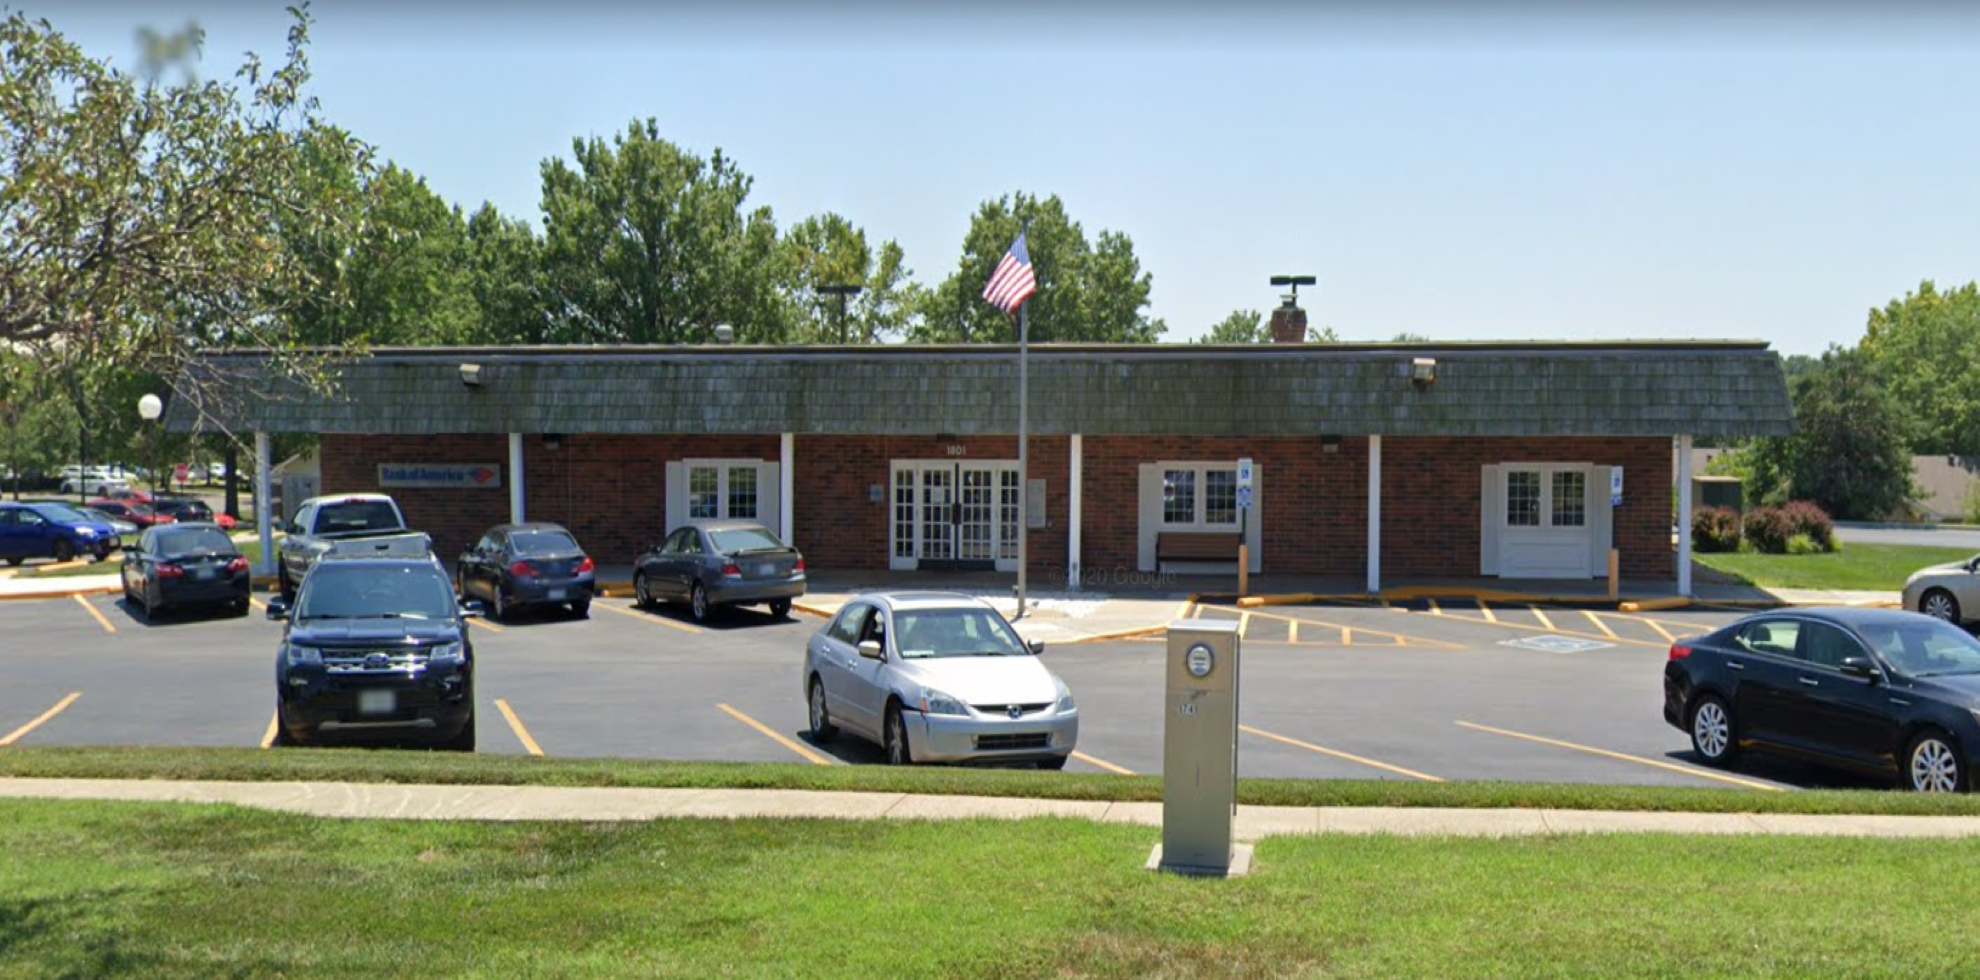 Bank of America financial center with drive-thru ATM | 1801 NW Chipman Rd, Lees Summit, MO 64081